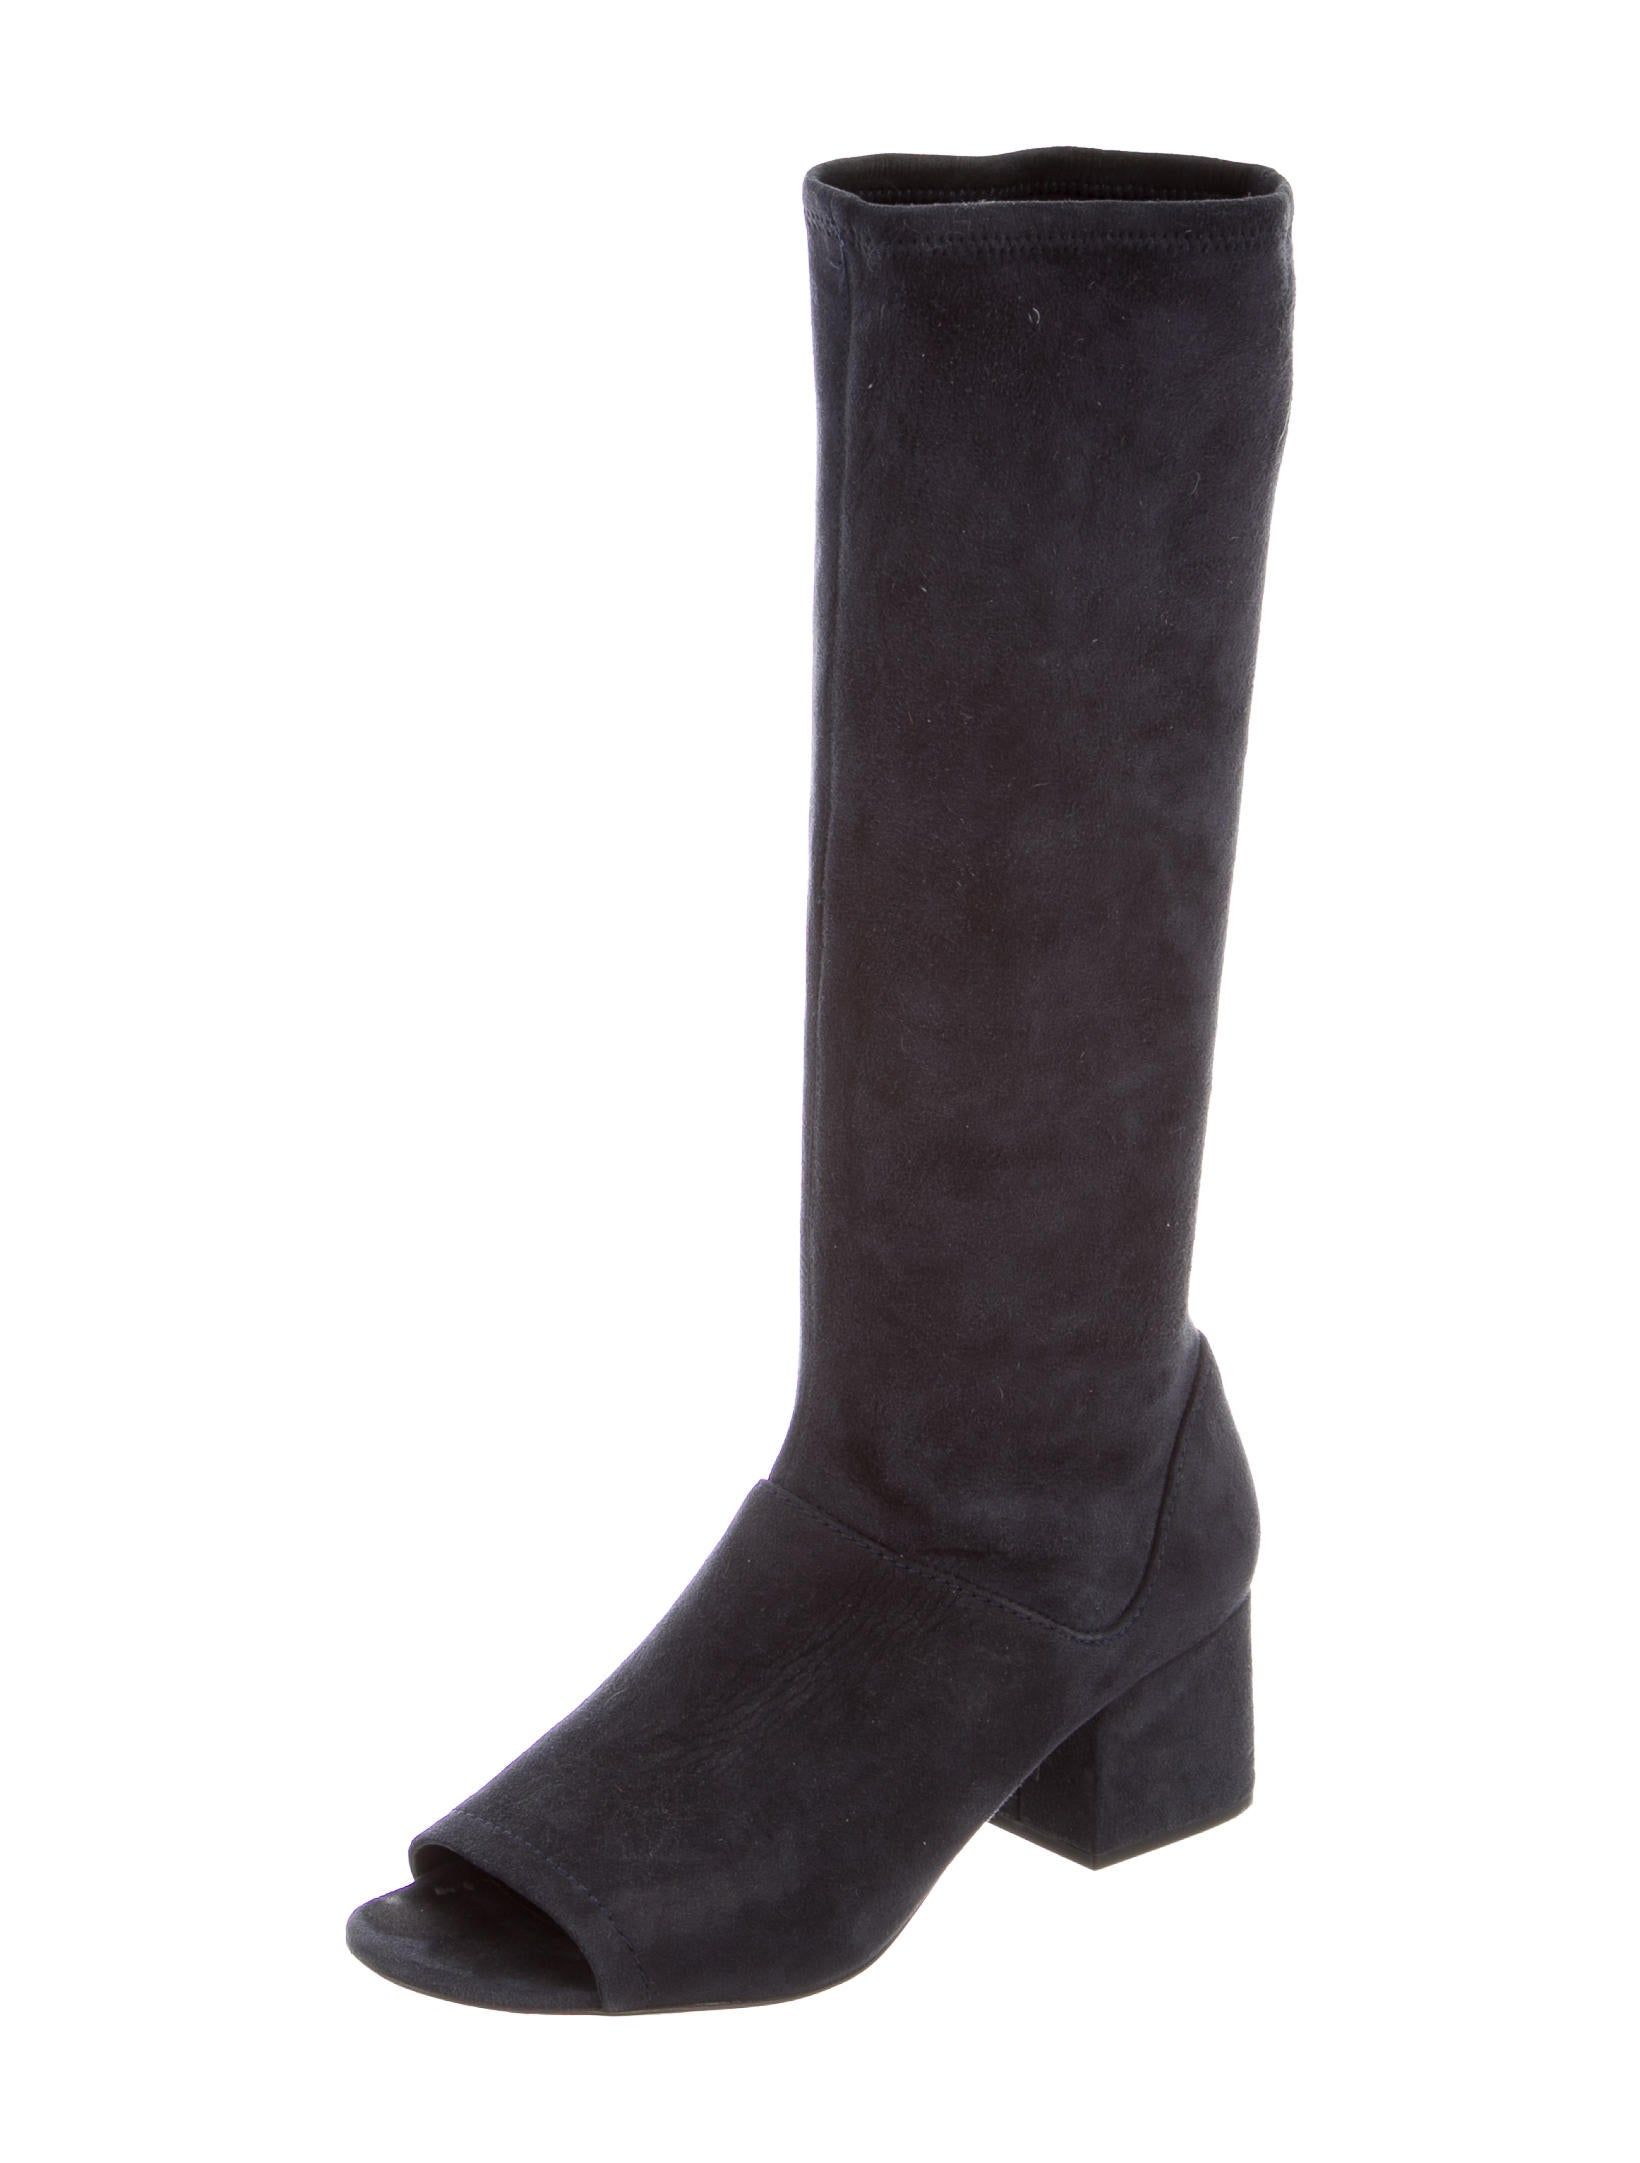 3 1 phillip lim peep toe suede boots shoes w31ph37136